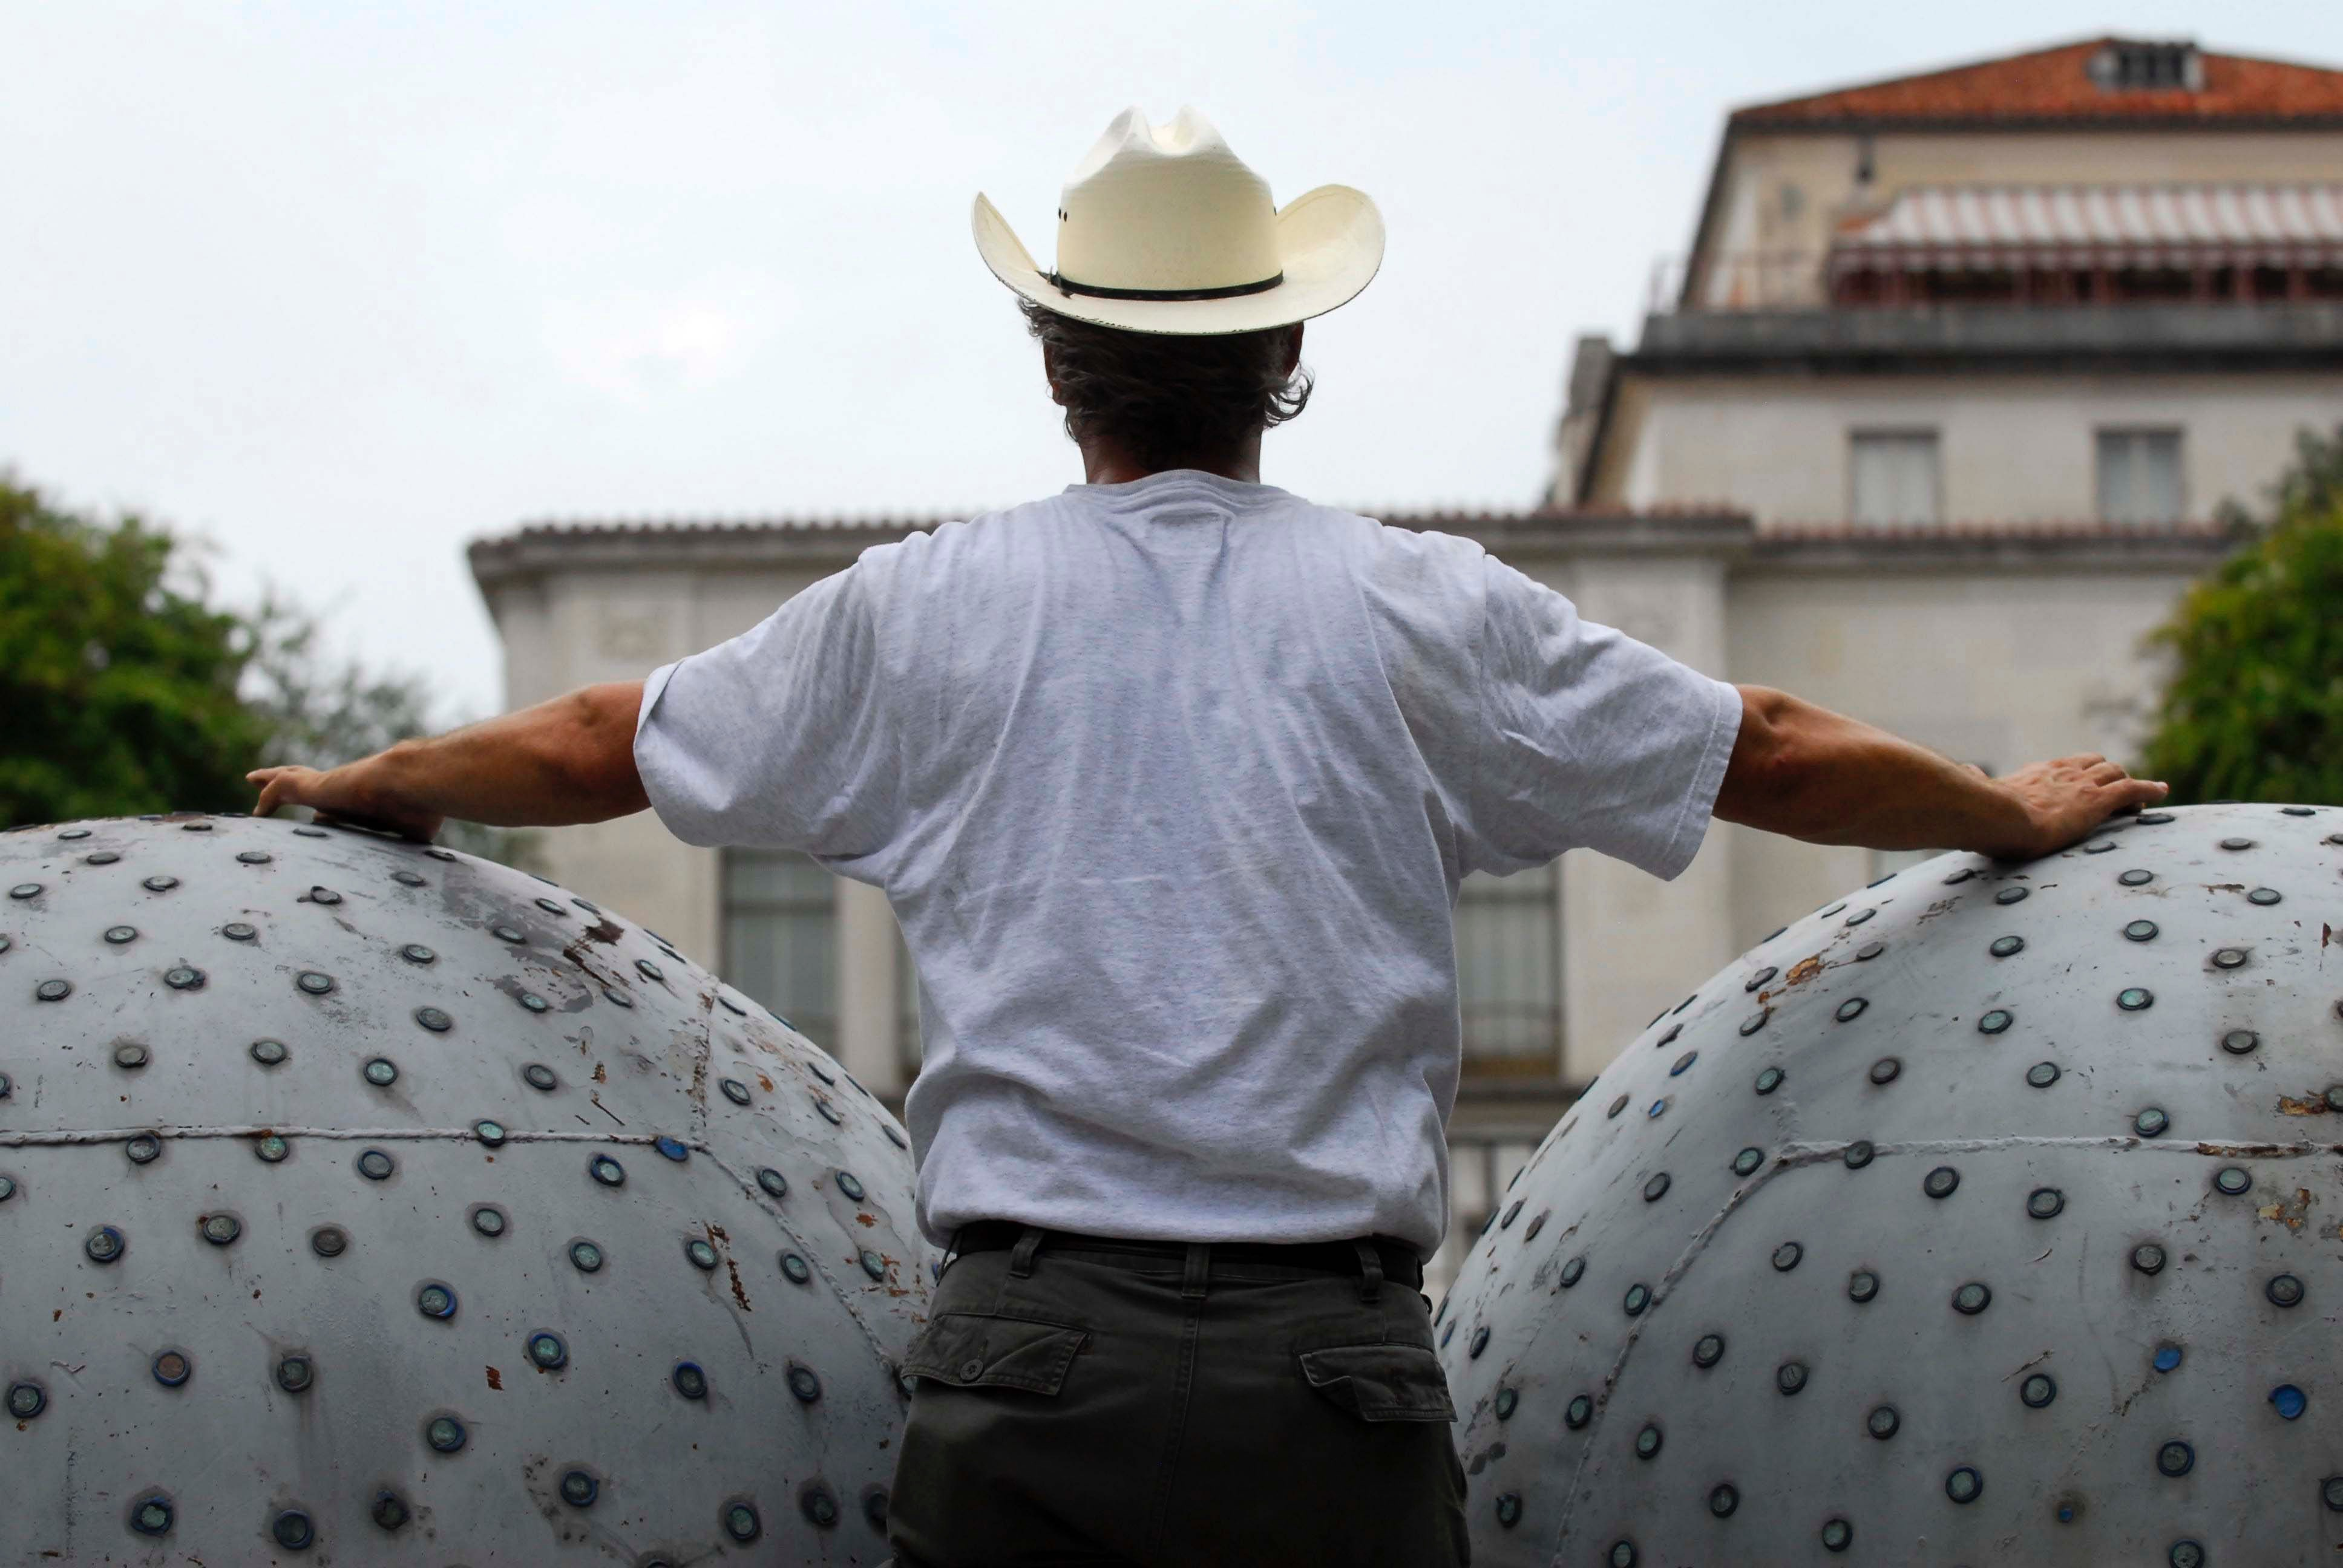 A man wearing a cowboy hat stands between the two large buoys that make up Donald Lipski's The West